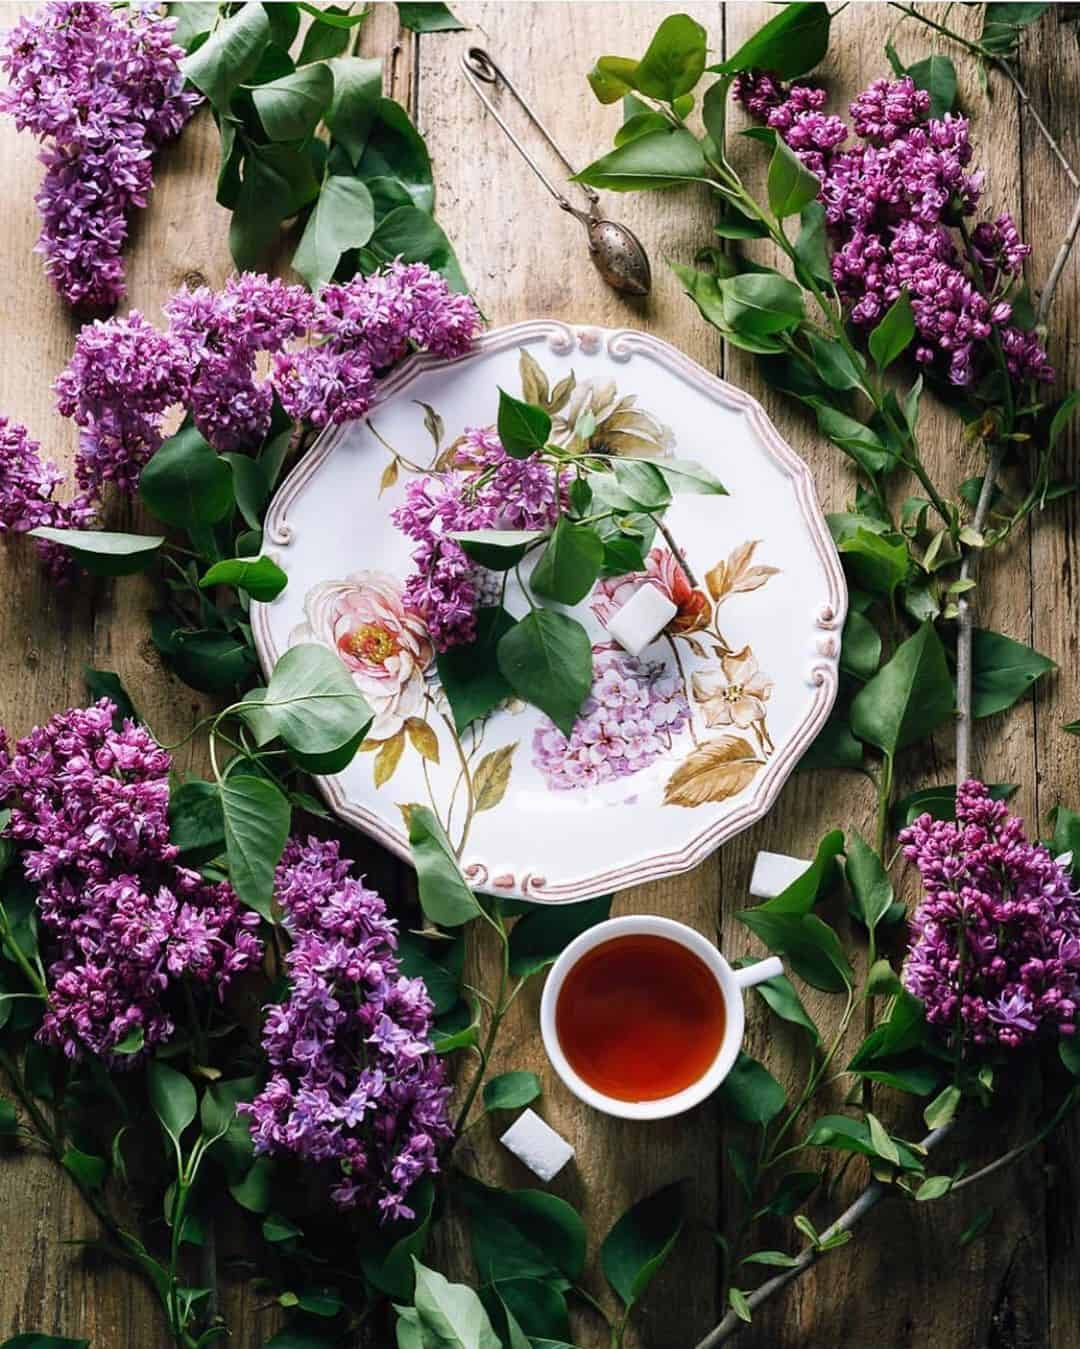 Delightful Food Compositions by Olena Hassel